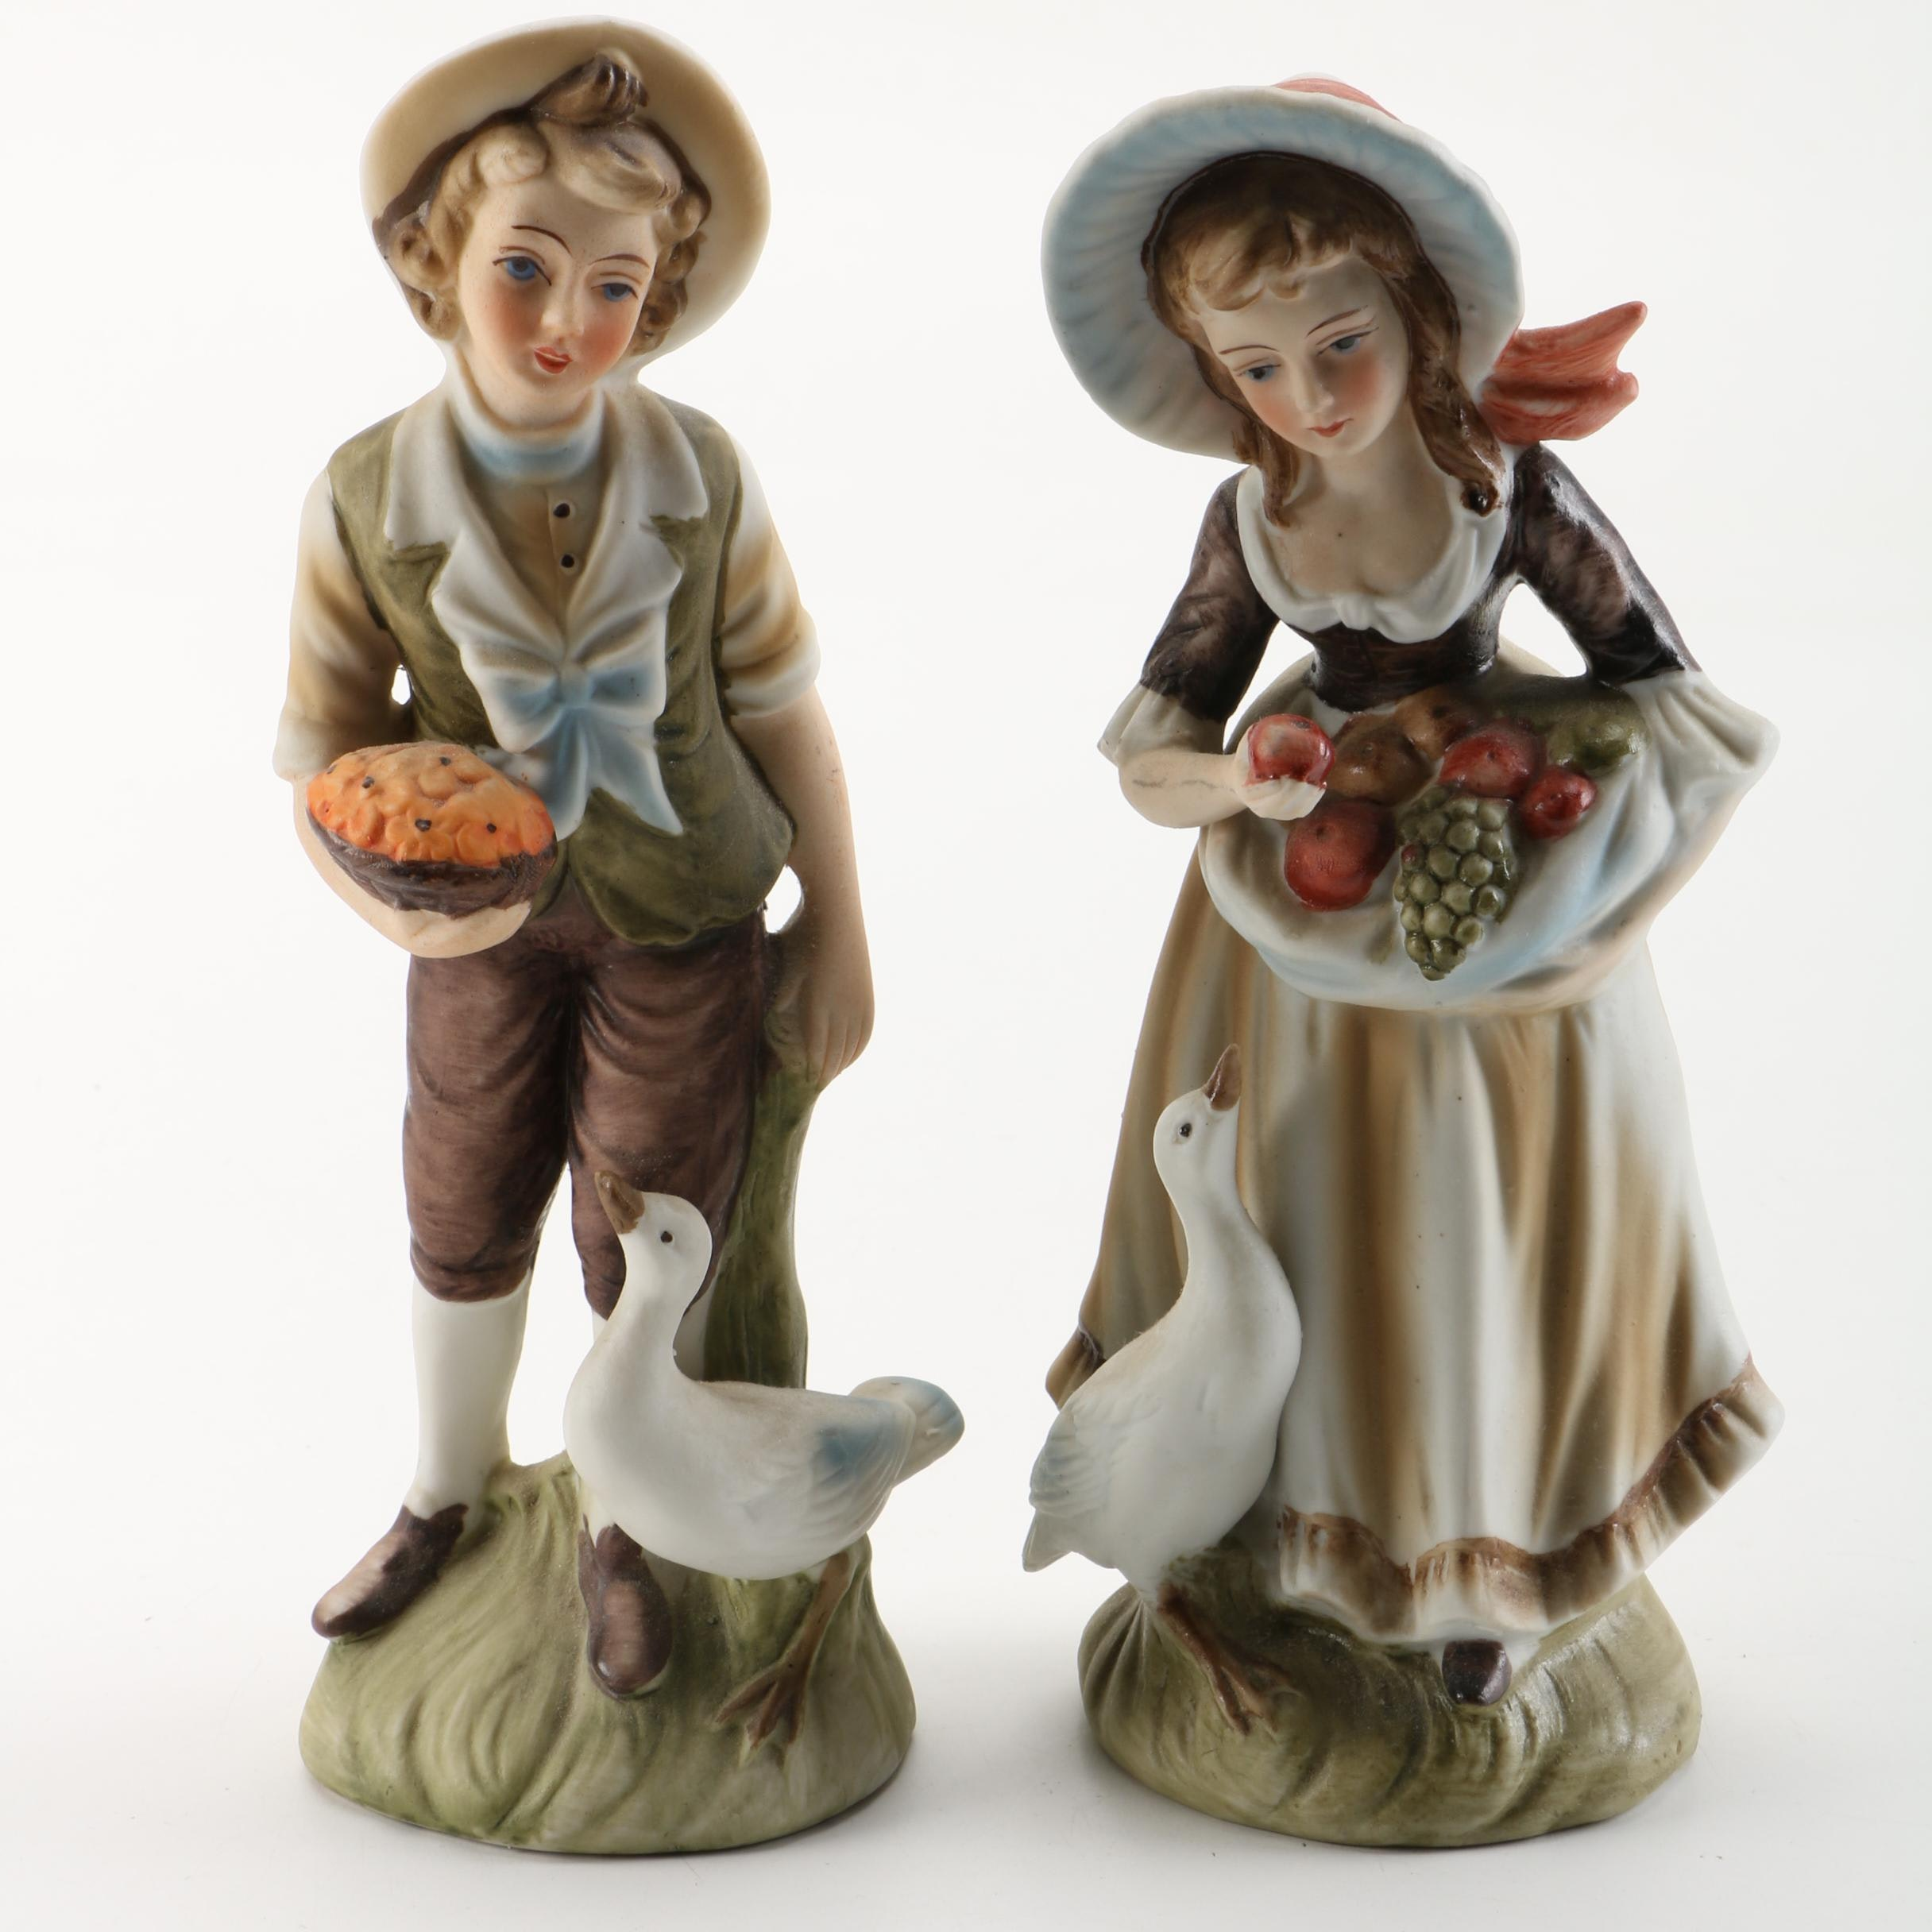 Lefton China Pastoral Figurines with Ducks and Fruit